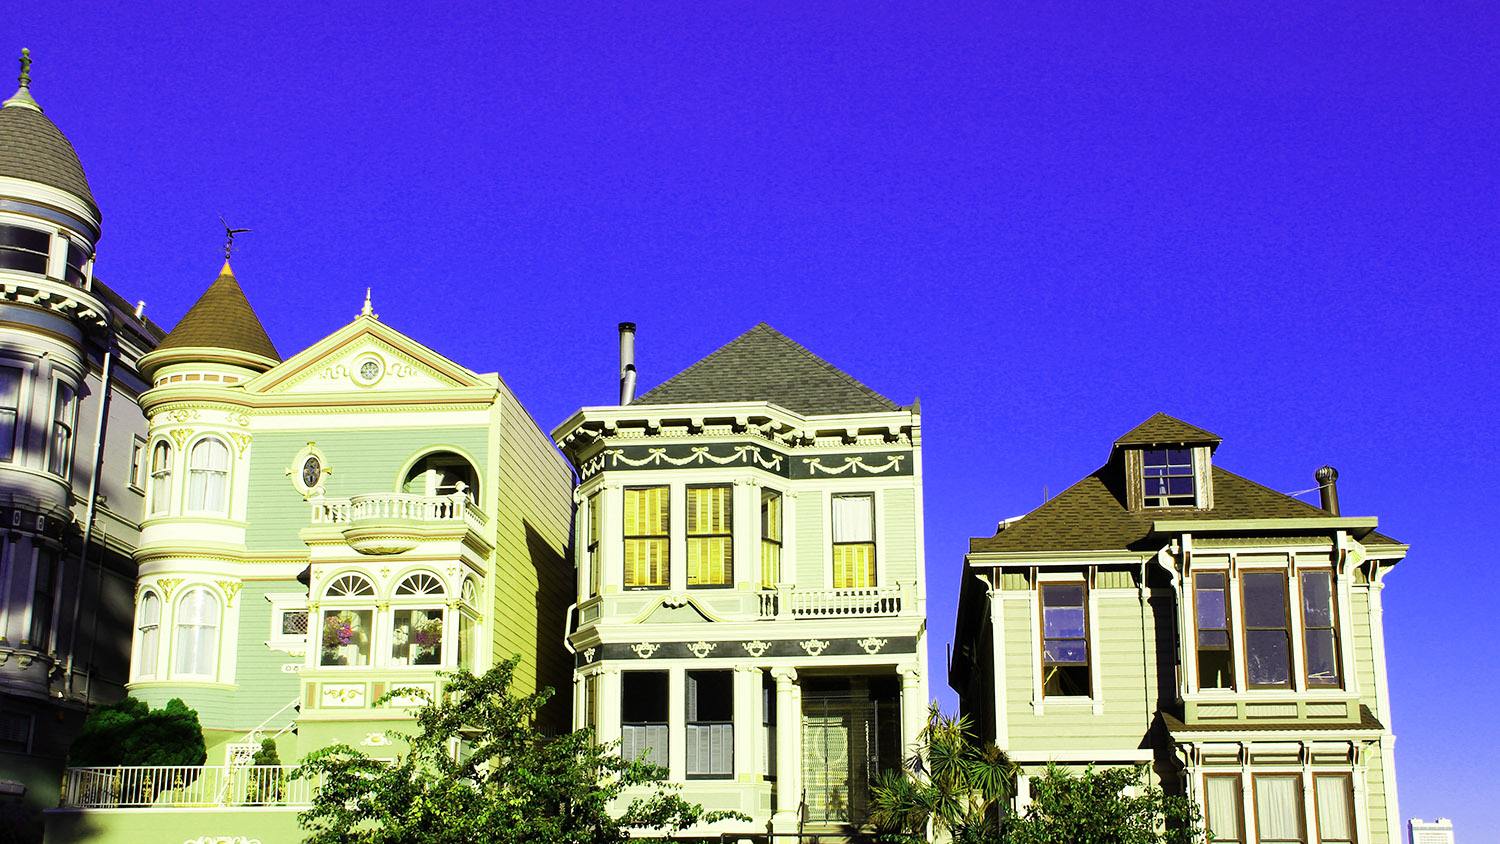 Here is why you should never be the landlord of multiple real estate properties